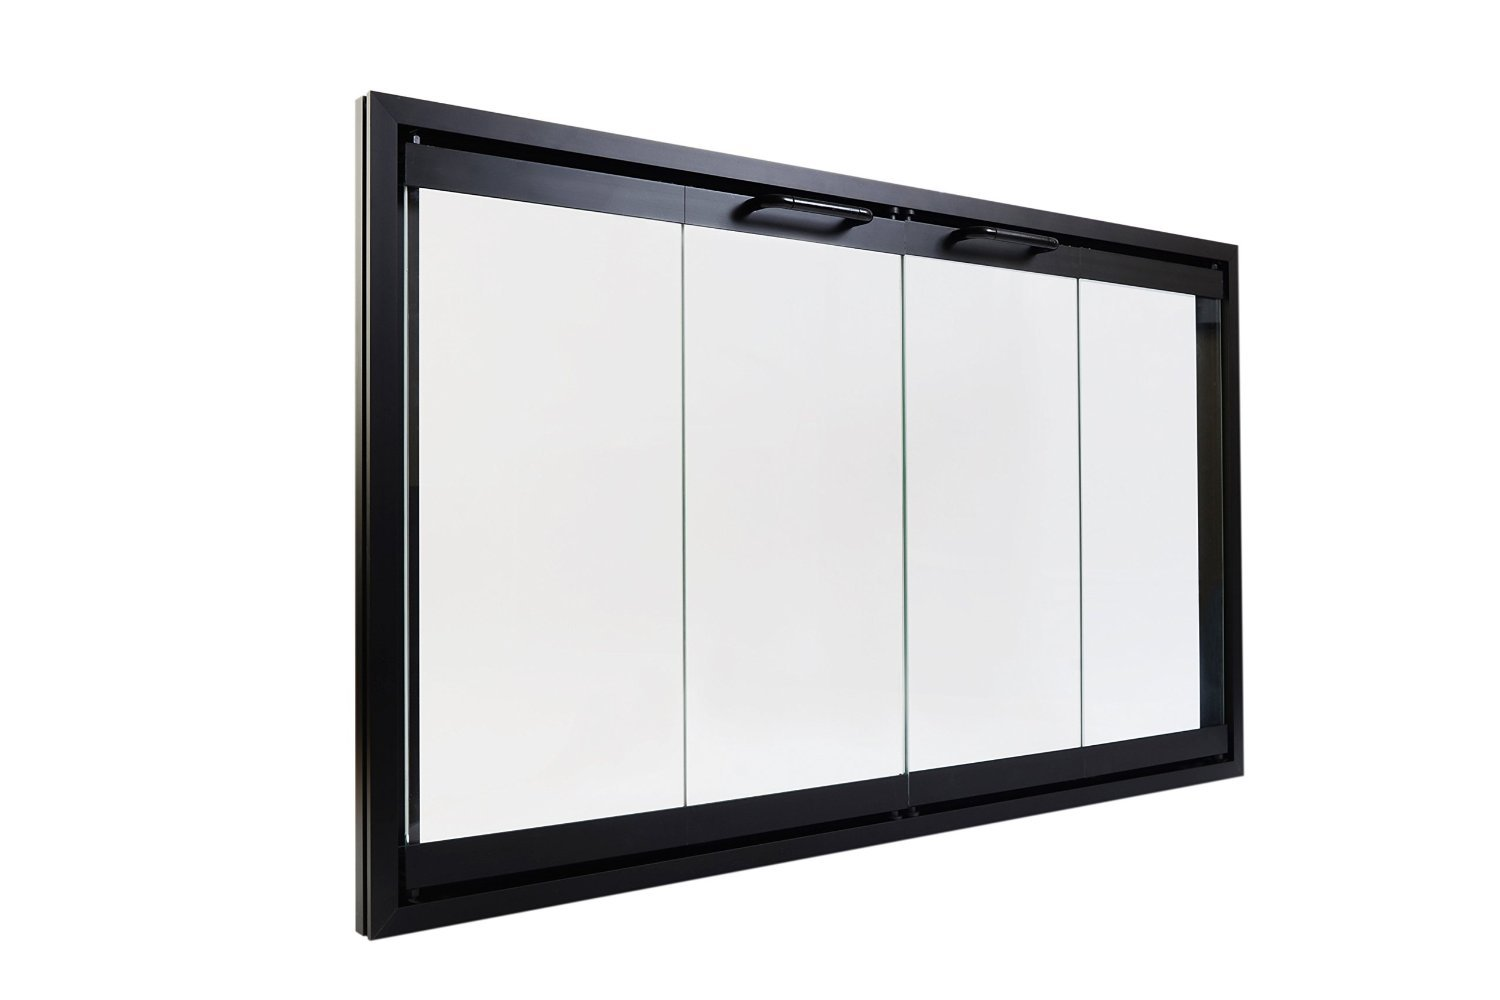 Charming Small Fireplace Glass Doors Part - 11: Amazon.com: Superior Bi-Fold Glass Fireplace Door, Easy To Install, Stop  Annoying Drafts And Lower Your Heating Bill (Fits Superior KR38-3): Home U0026  Kitchen